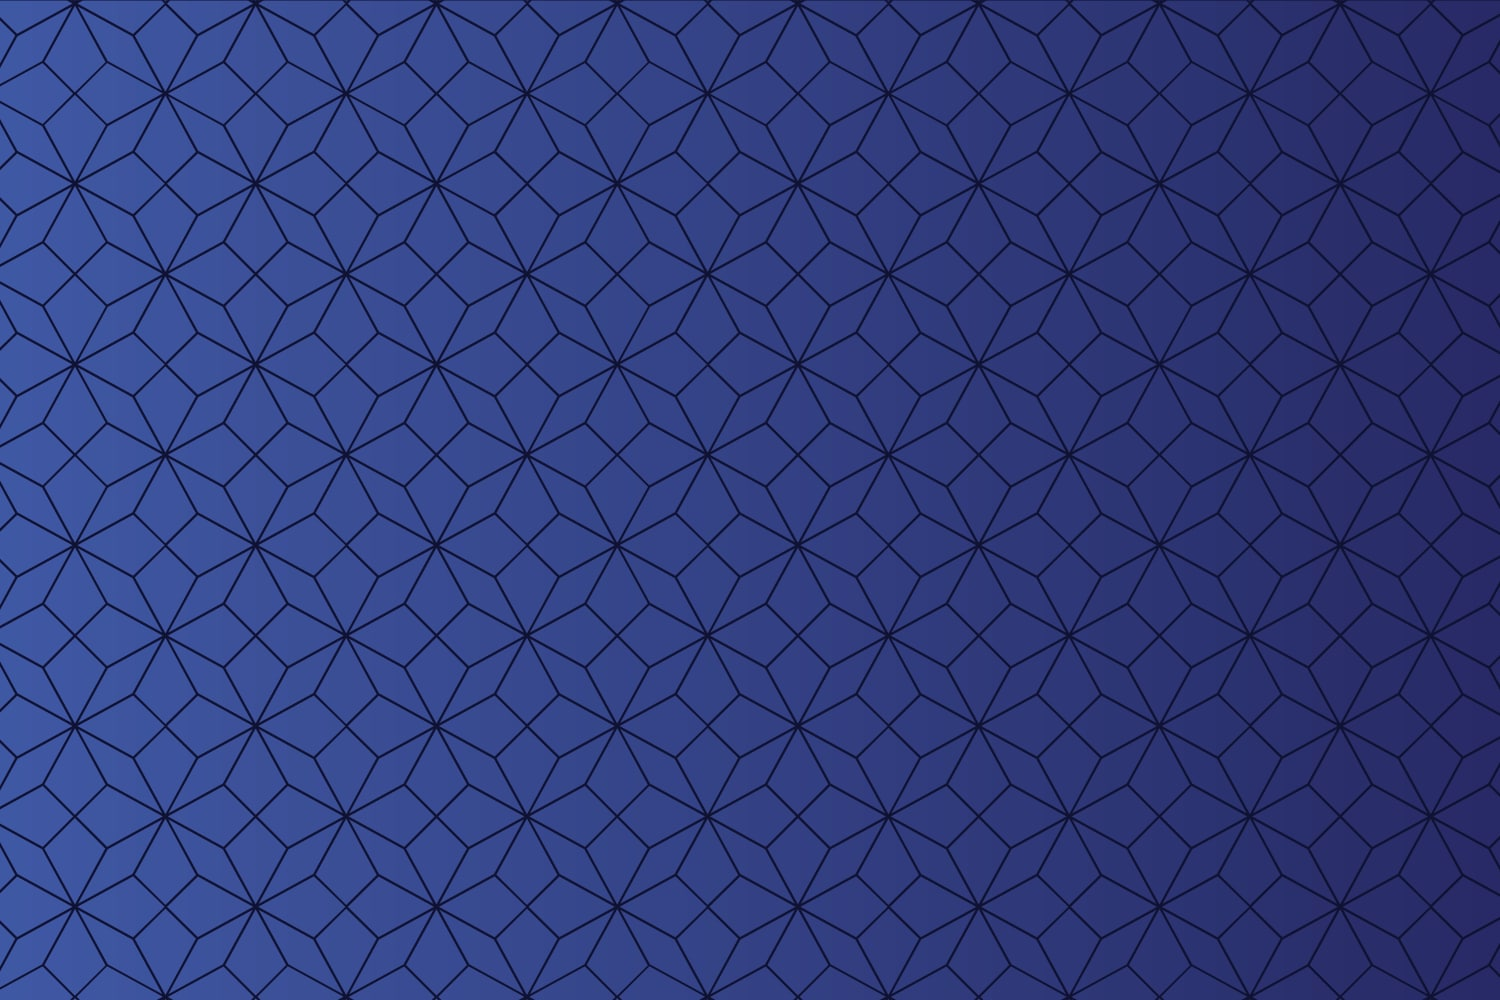 Violet gradient background with origami pattern